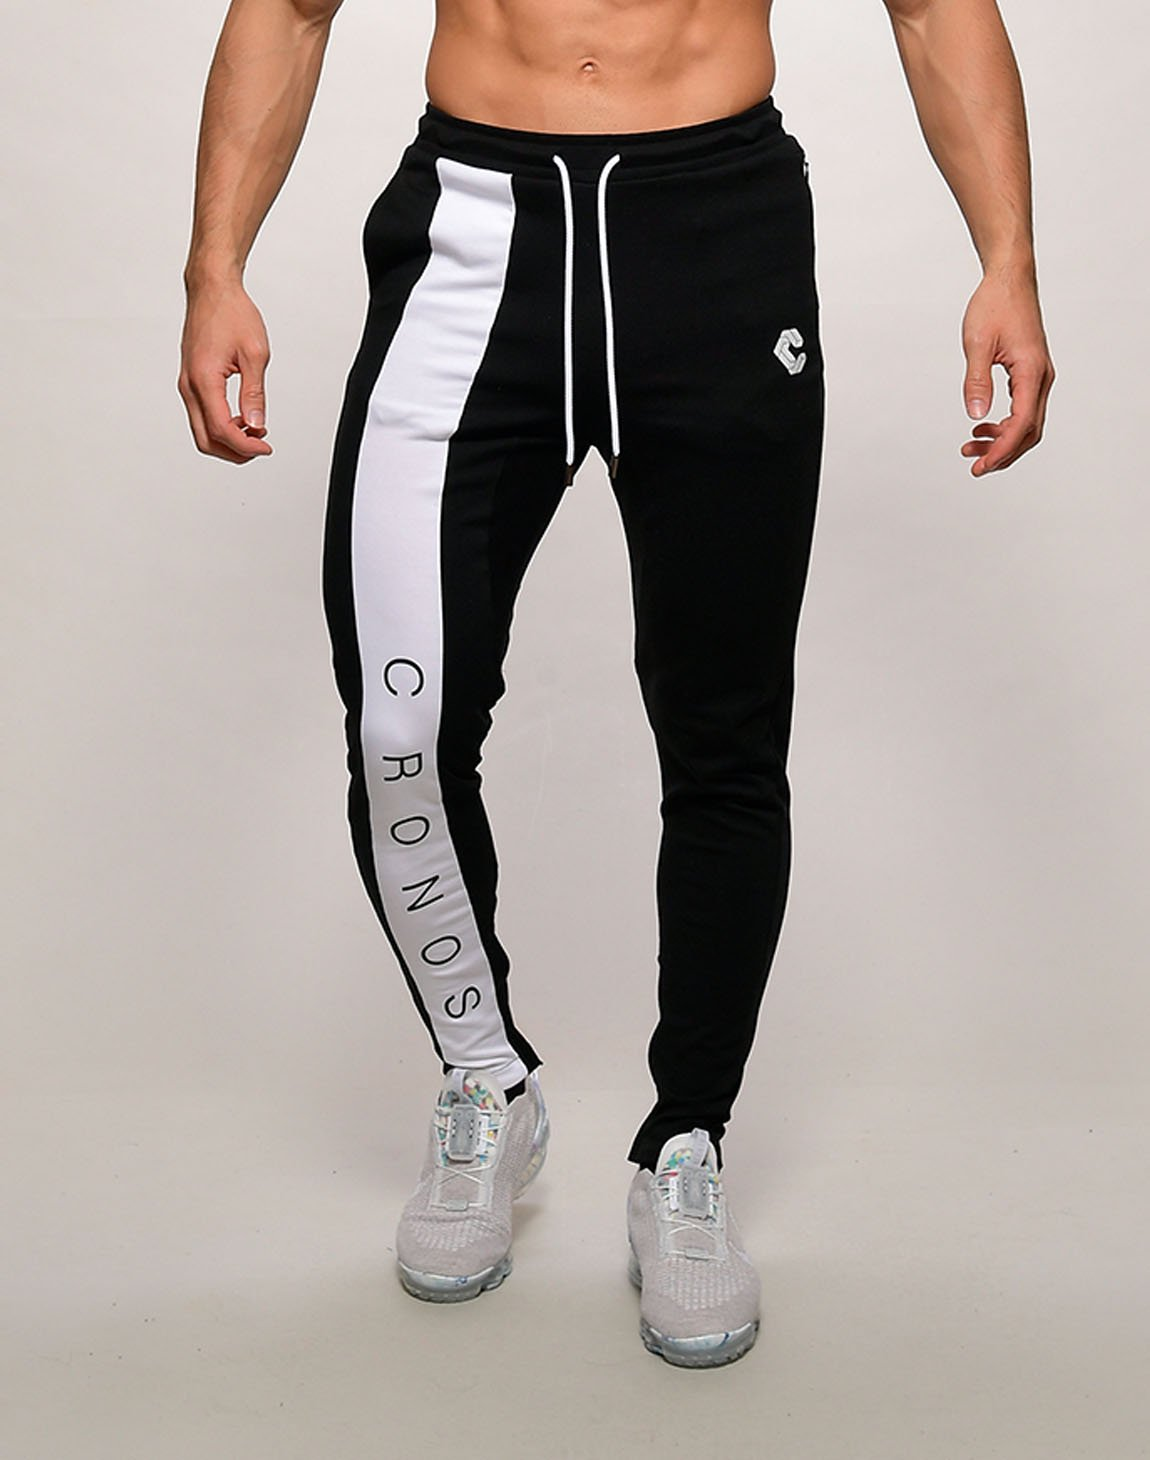 <img class='new_mark_img1' src='https://img.shop-pro.jp/img/new/icons1.gif' style='border:none;display:inline;margin:0px;padding:0px;width:auto;' />CRONOS FRONT LETTER LOGO  SWEET PANTS【BLACKxWHITE】